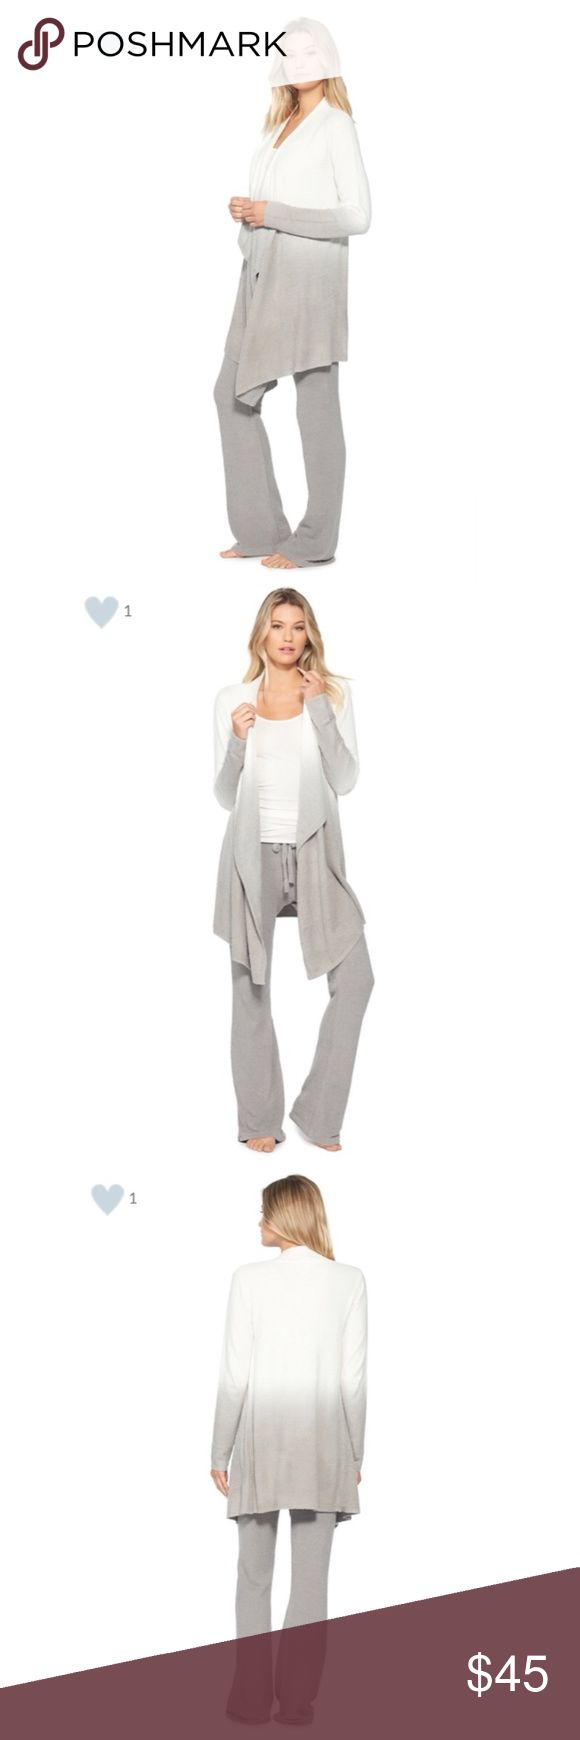 the COZYCHIC LITE® CALYPSO WRAP A best seller and wardrobe favorite.  This soft, sophisticated long sleeved wrap can be worn multiple ways and is ideal for any occasion.  Size S/M 80% Nylon, 20% Rayon from bamboo Barefoot Dreams Sweaters